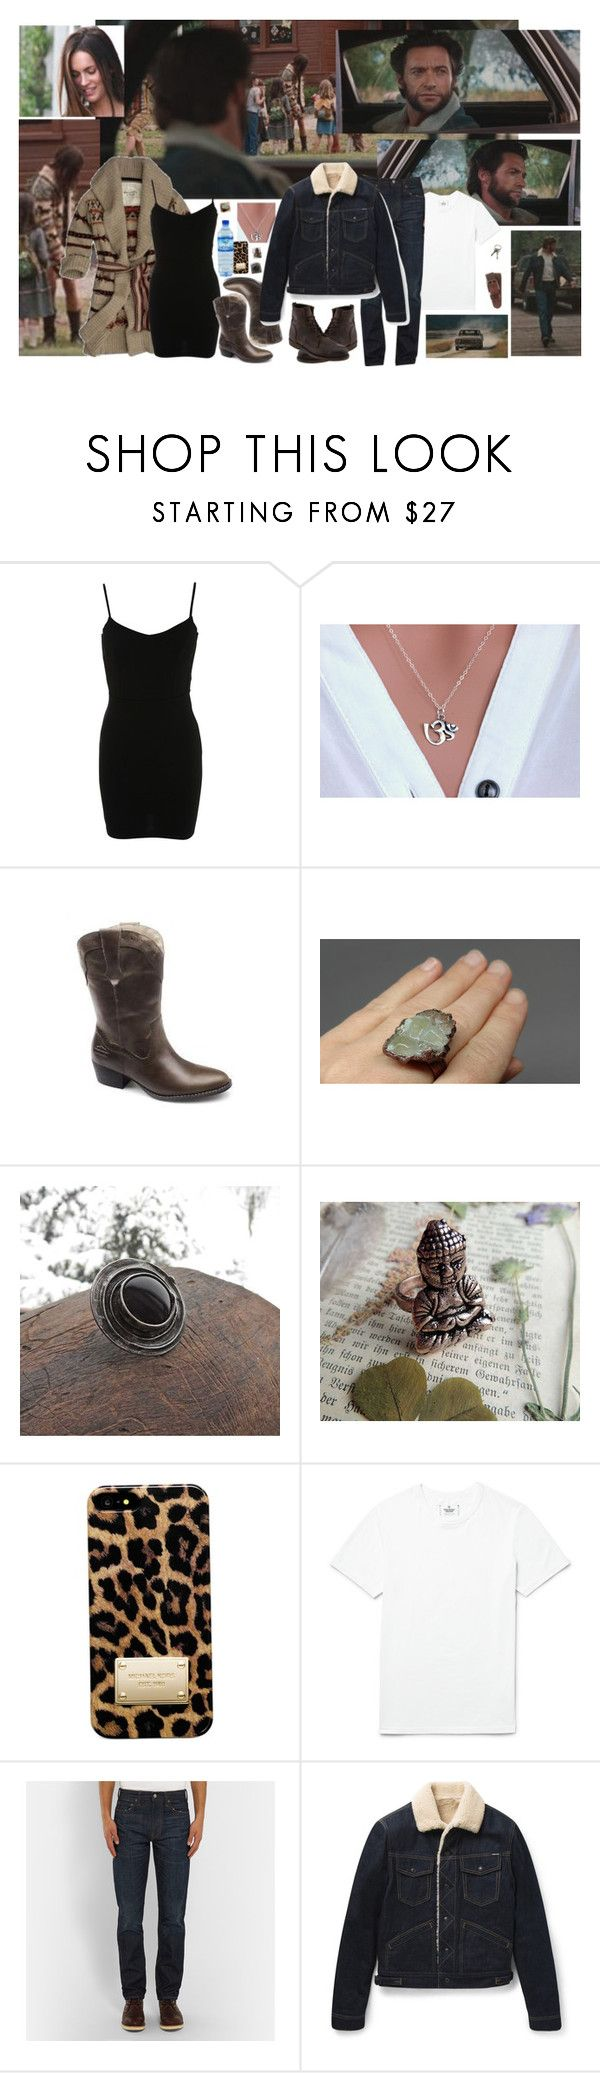 """""""WOLVERASTET - BASTET & WOLVERINE CANADA TRIBUTE"""" by carla-turner-bastet ❤ liked on Polyvore featuring Ed Hardy, Miss Selfridge, Cadeau, Harley-Davidson, Michael Kors, Reigning Champ, Therapy, J.Crew, Tom Ford and Brooks Brothers"""